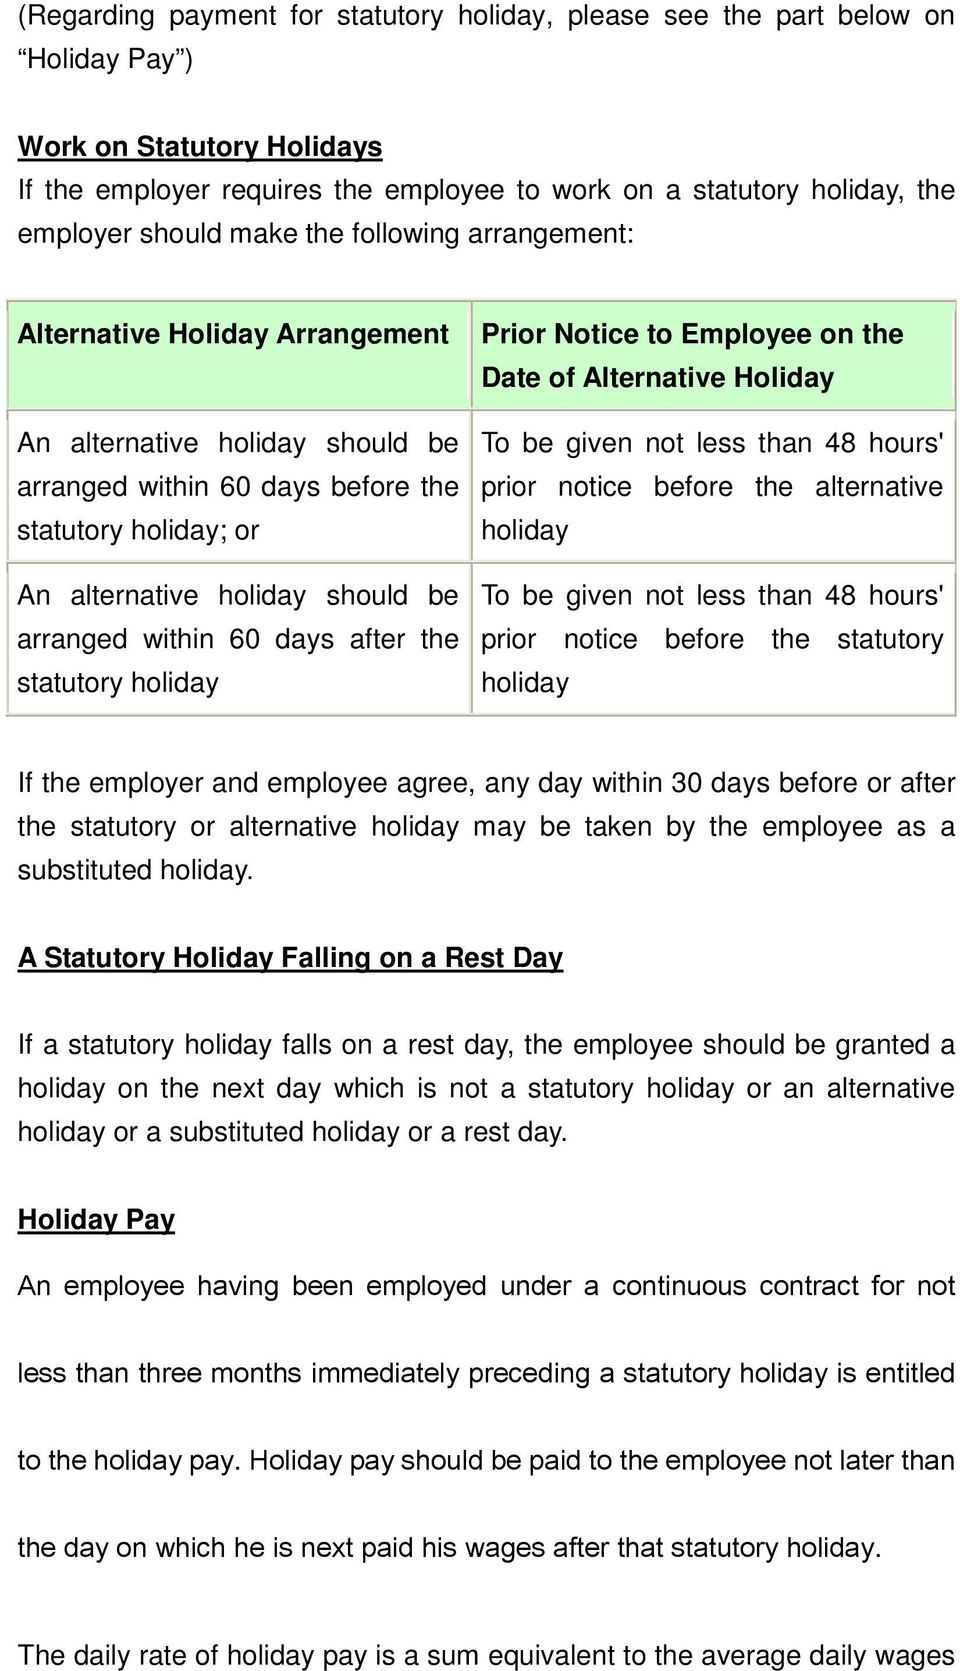 arranged within 60 days after the statutory holiday Prior Notice to Employee on the Date of Alternative Holiday To be given not less than 48 hours' prior notice before the alternative holiday To be